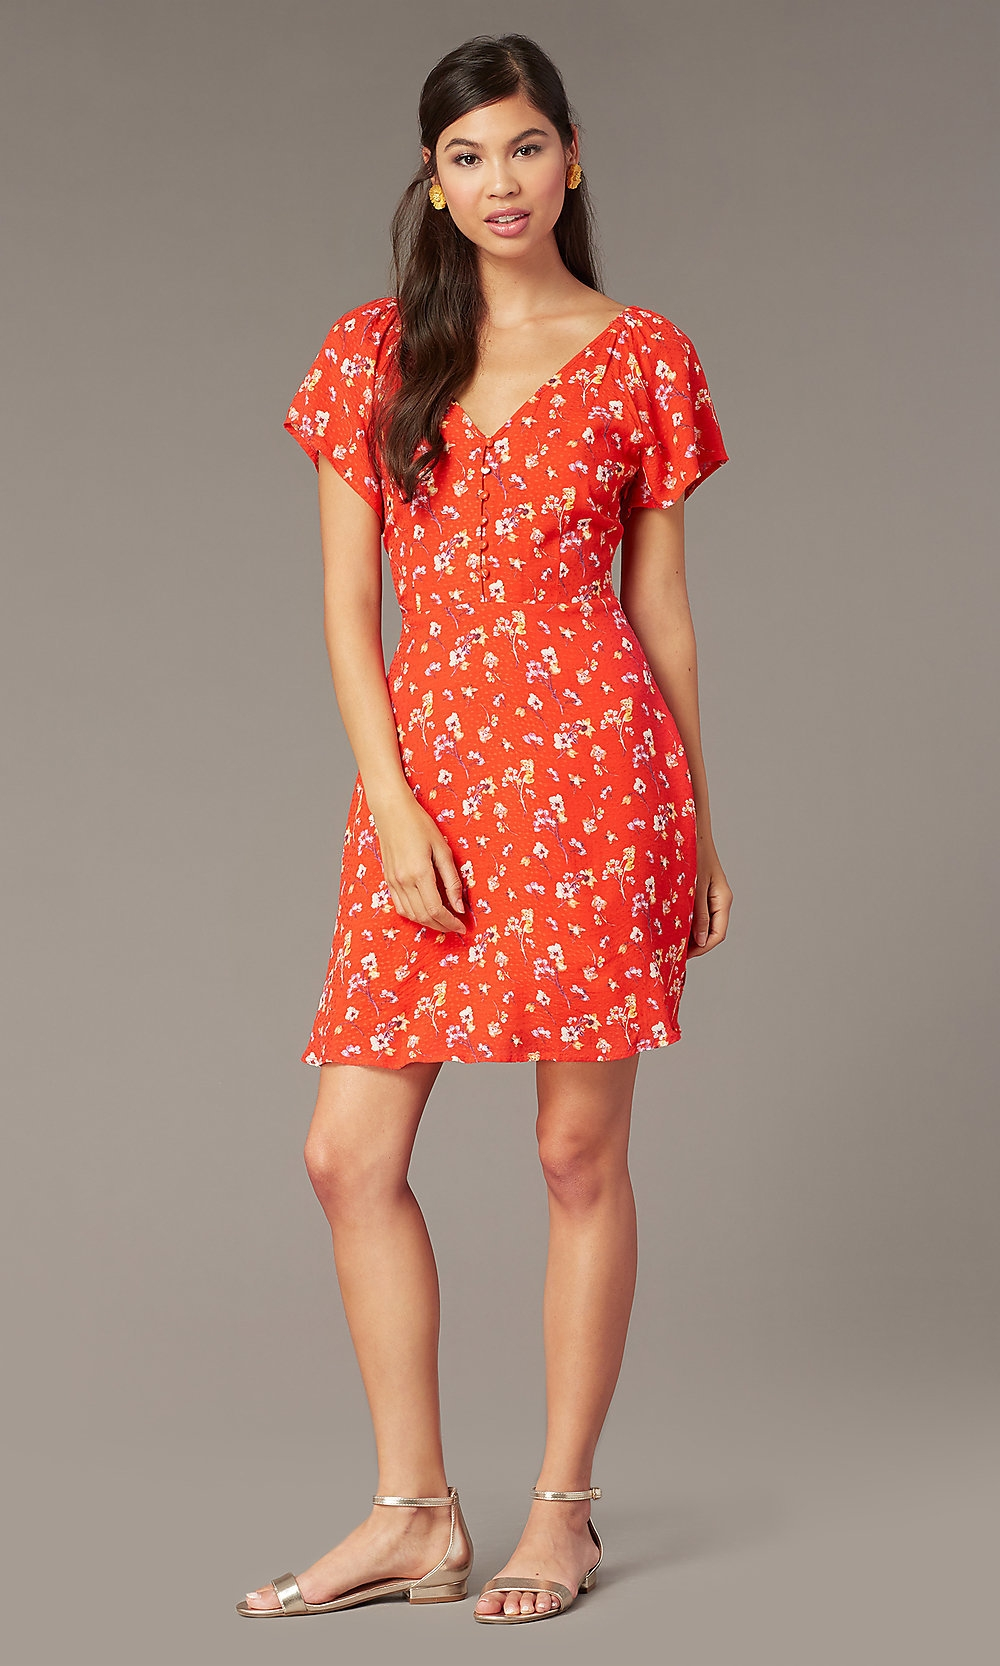 v neck print short casual dress with short sleeves